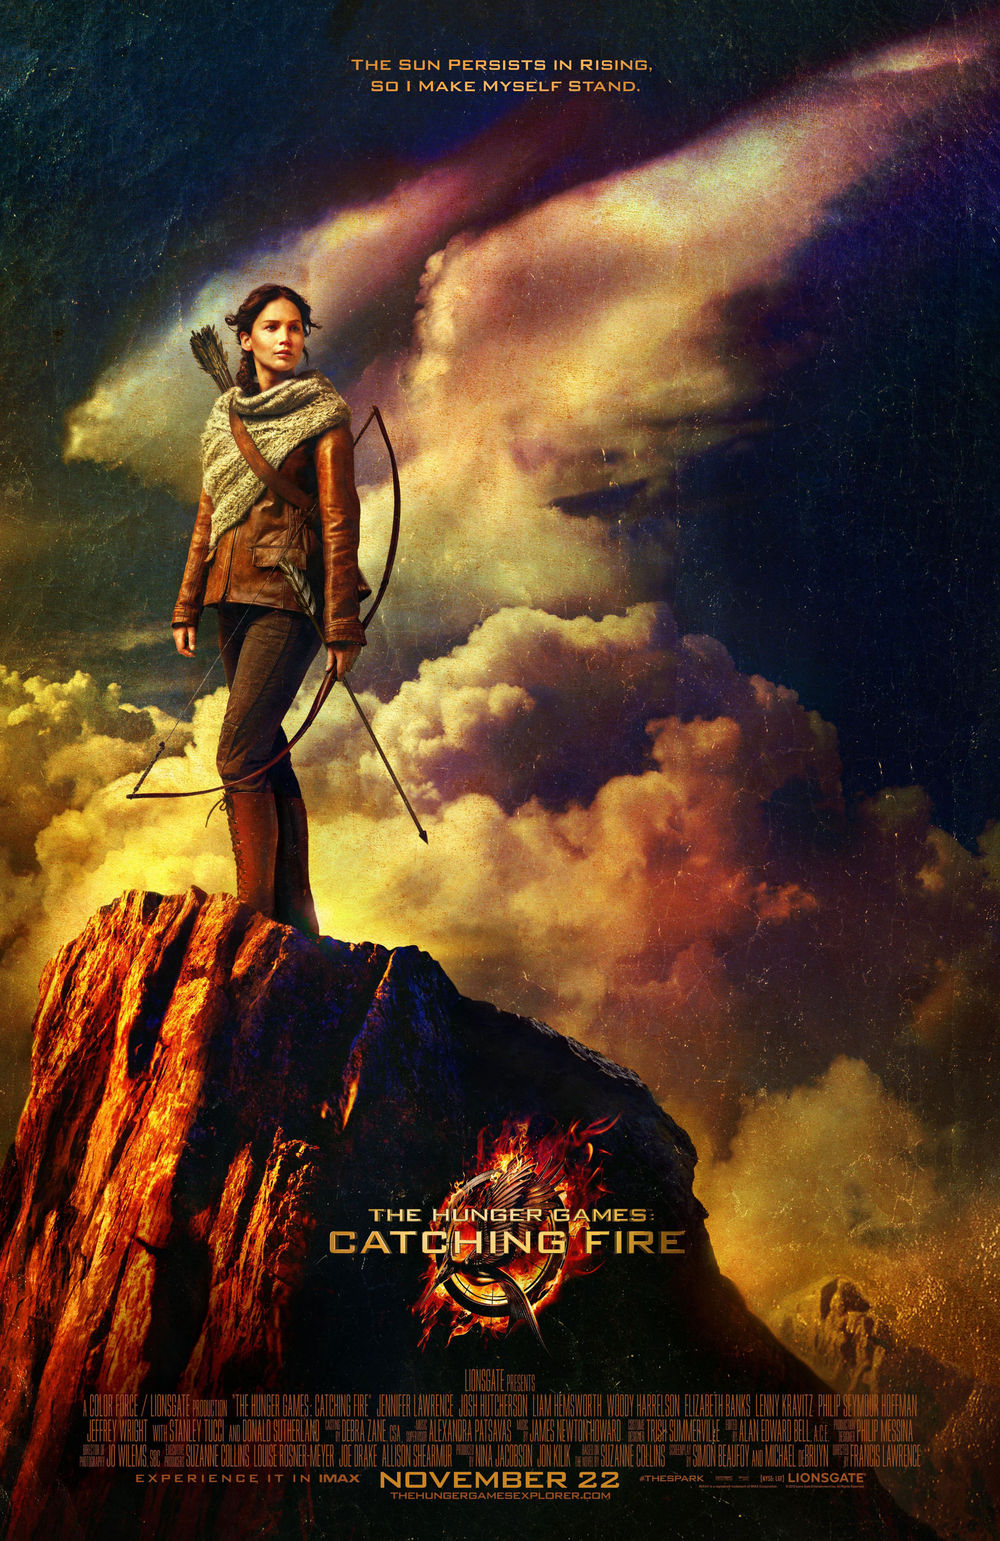 movies torrent: The Hunger Games: Catching Fire (2013)